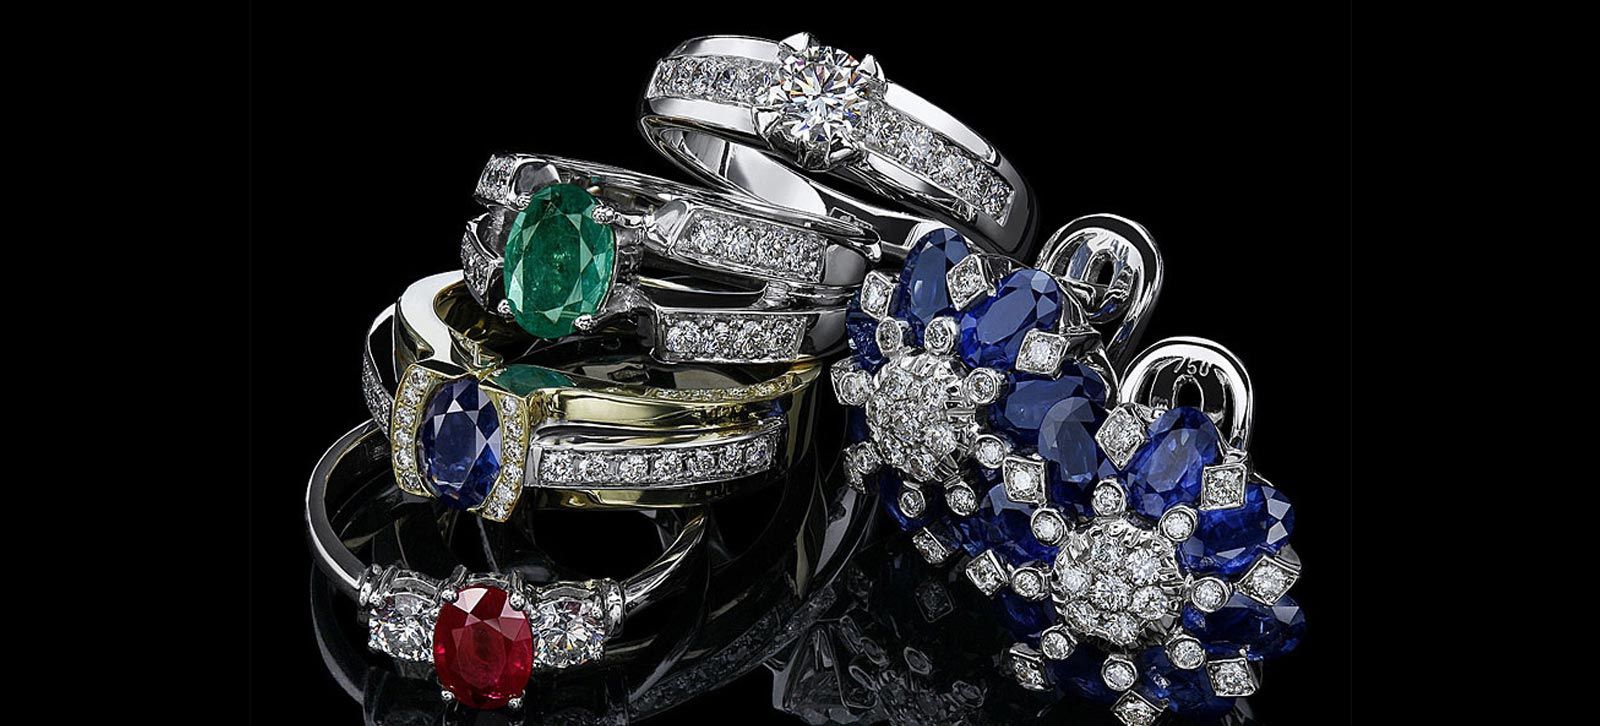 Sell Your Jewelry For Cash Bentley Diamond Wall New Jersey